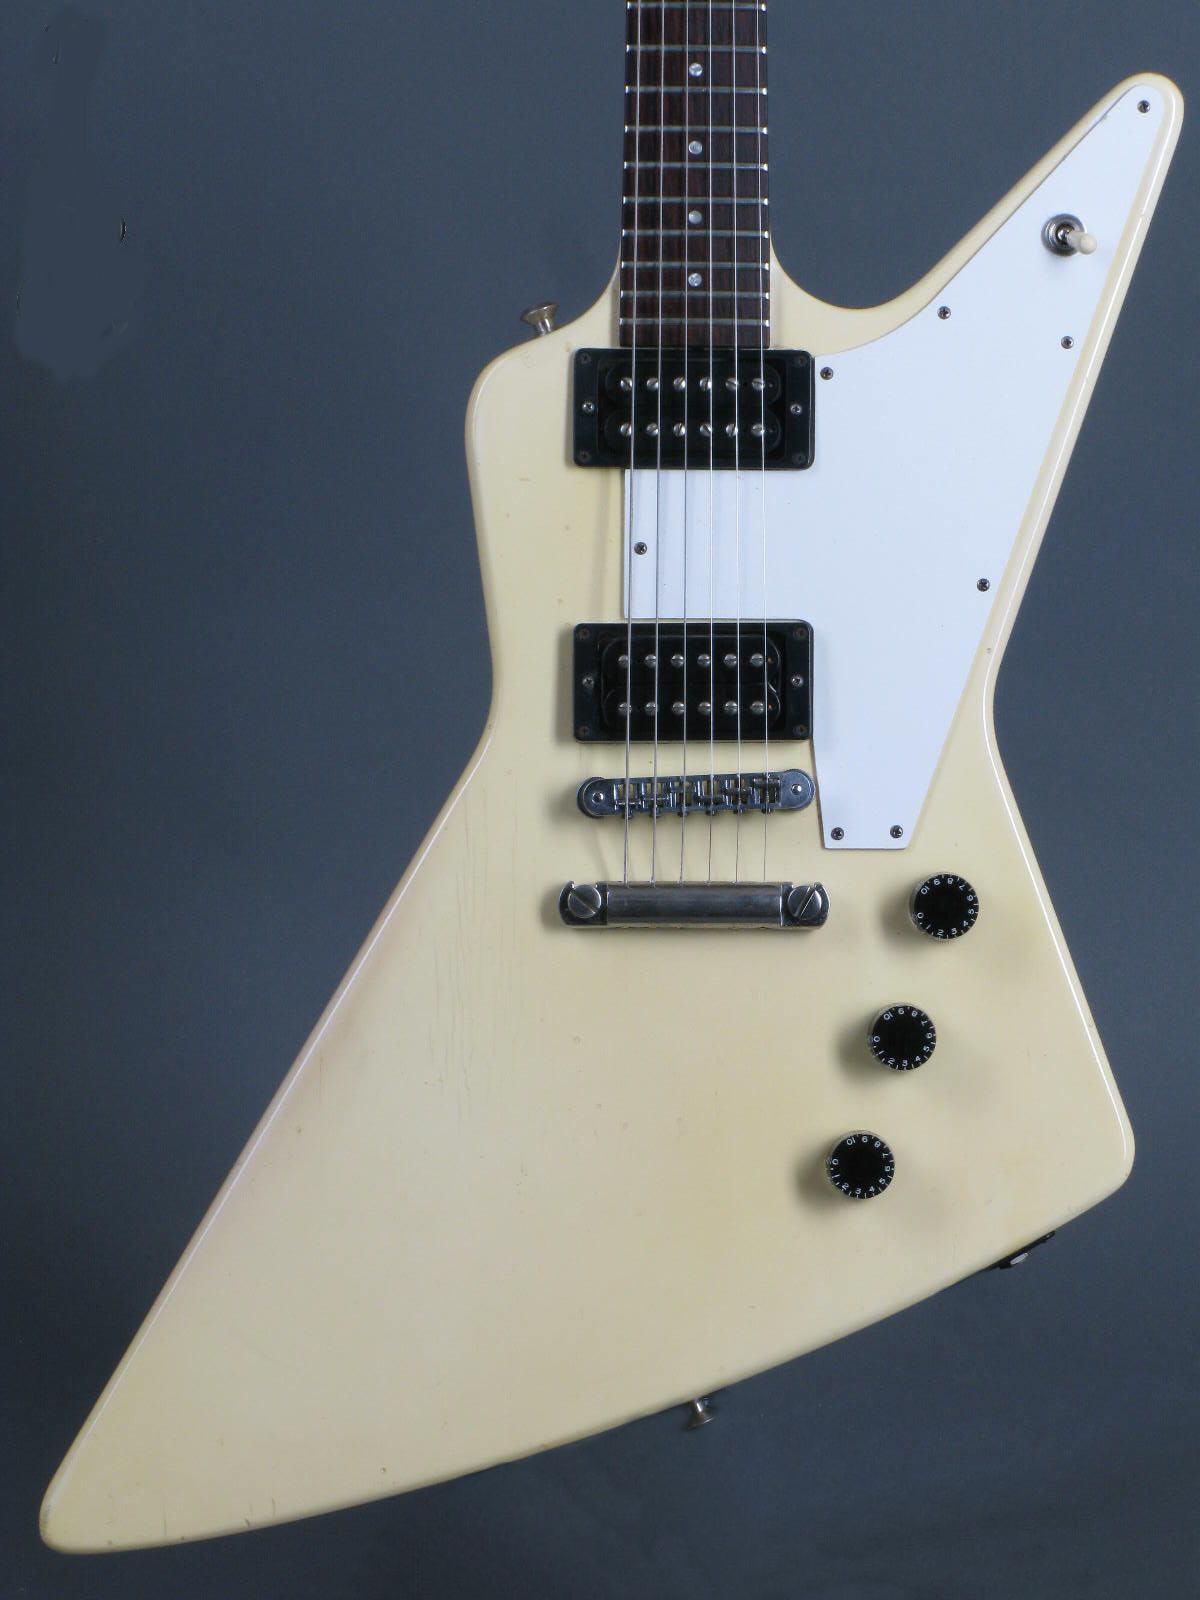 hight resolution of pg 36202 gibson 1983 explorer slightly different from